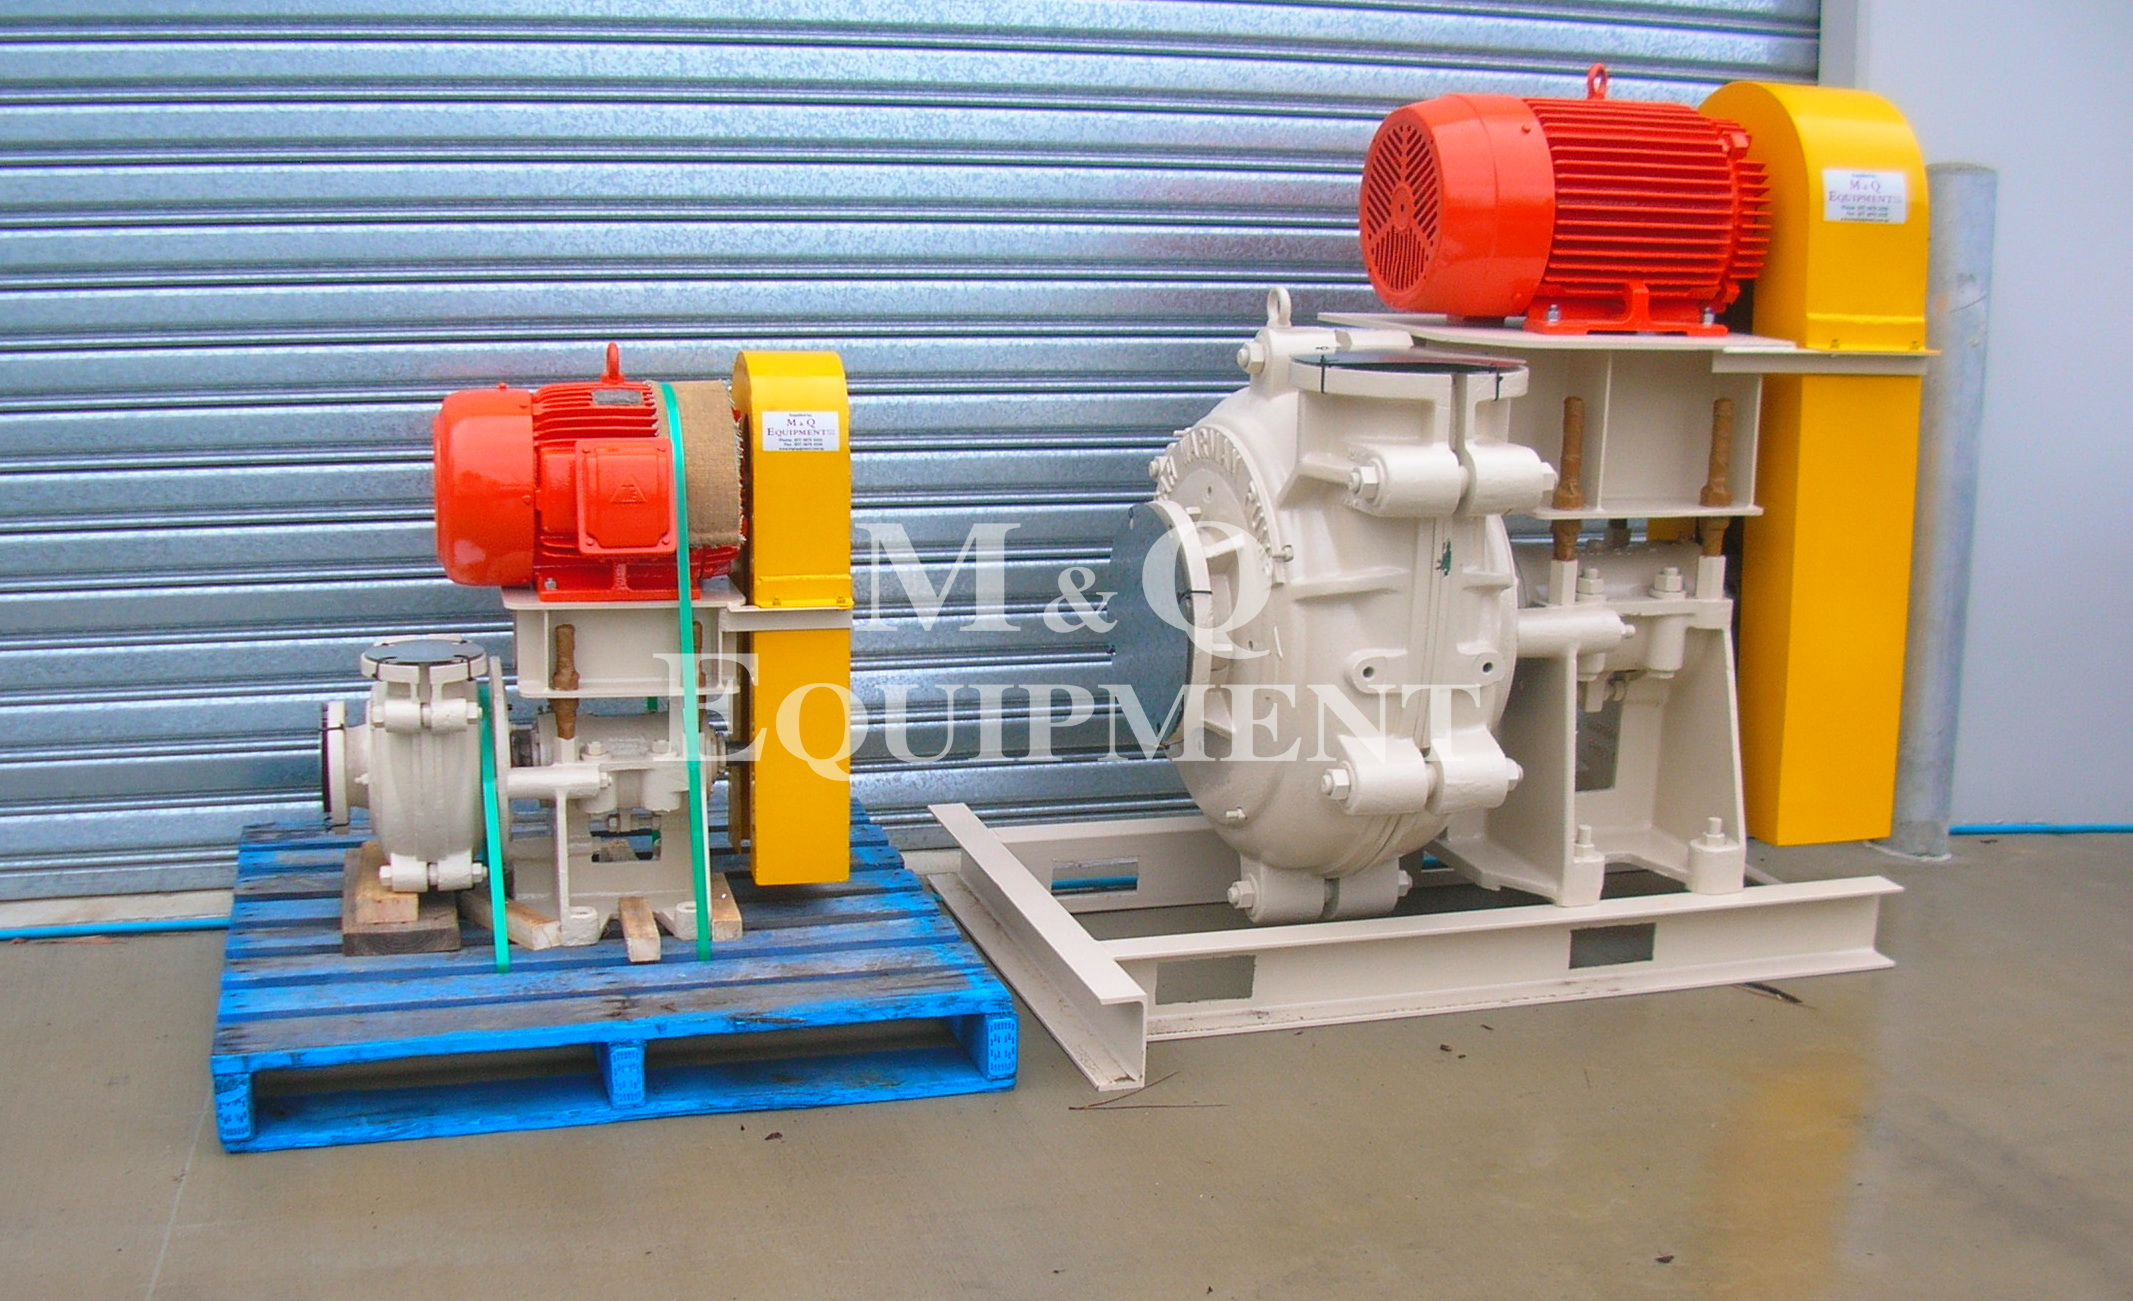 Sold Item 372 - Rebuilt Warman Pumps